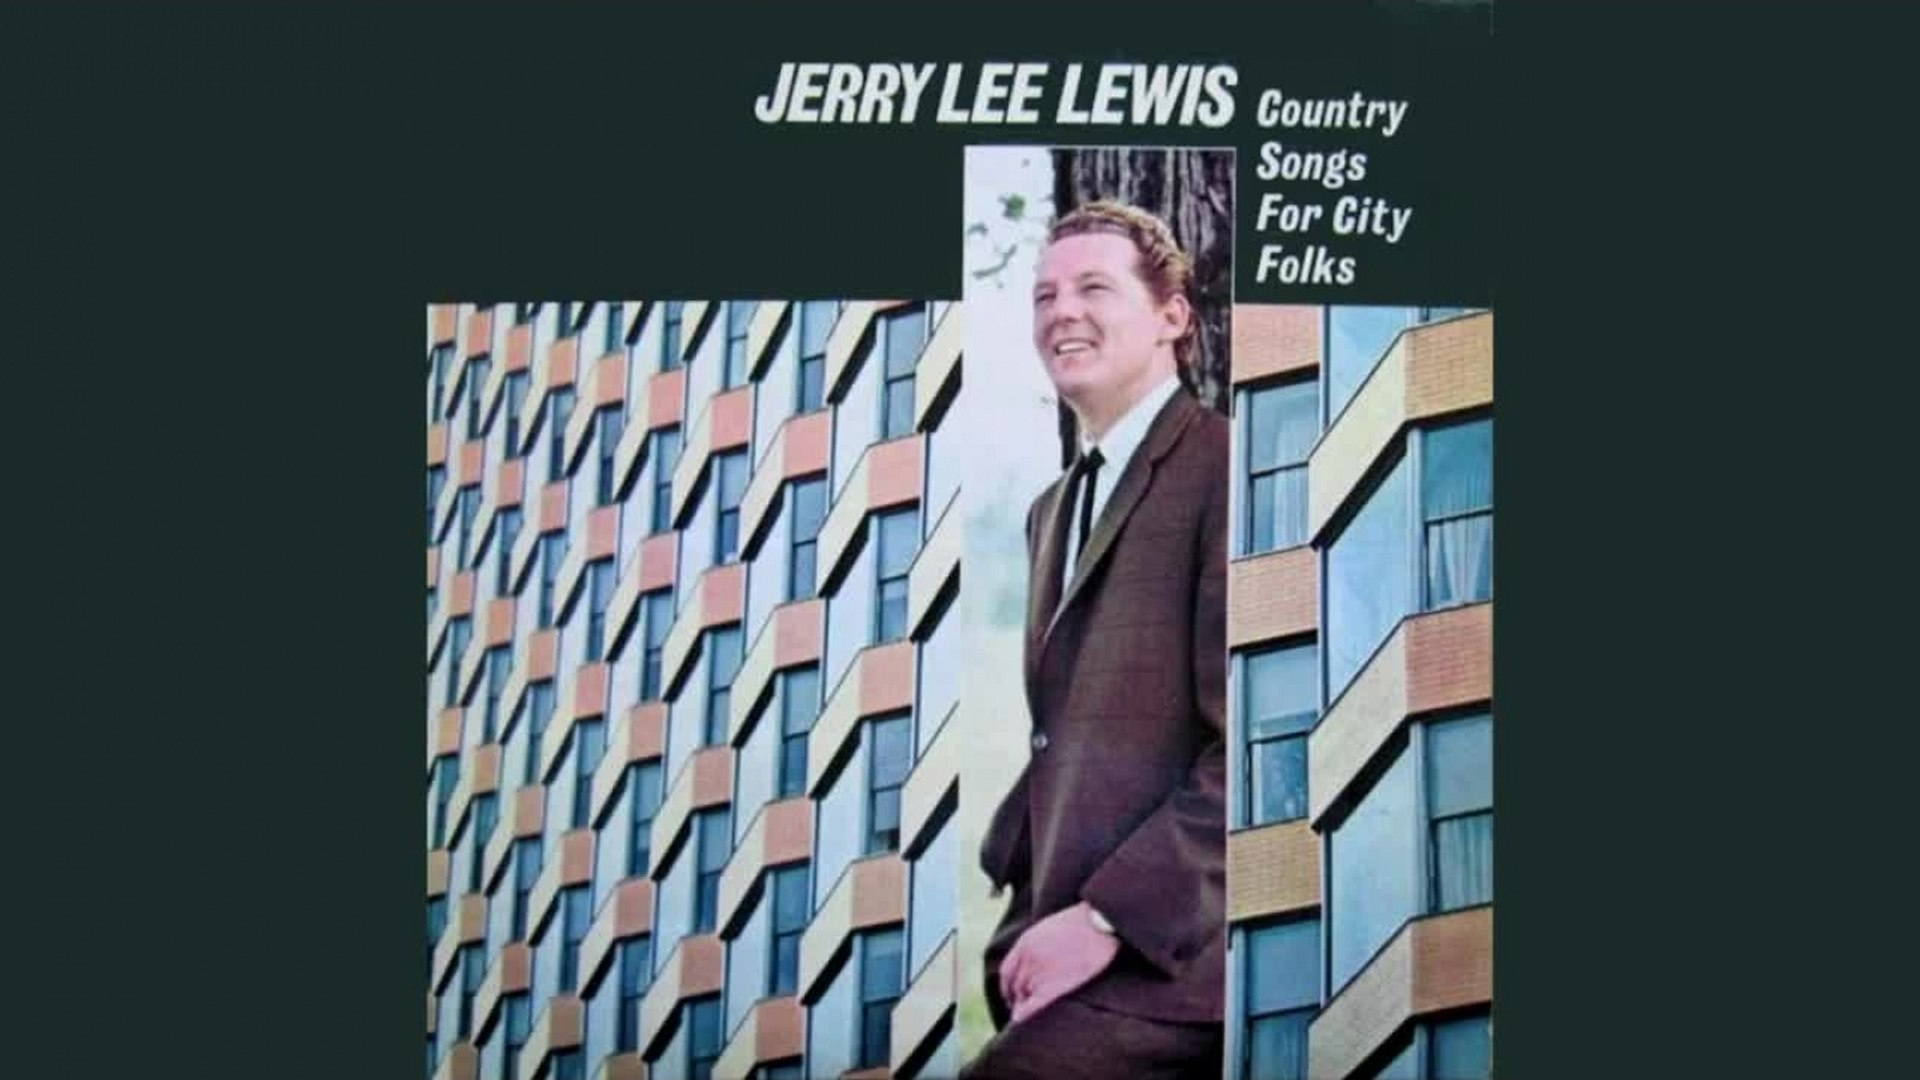 Jerry Lee Lewis - Country Songs For City Folks - Full Album